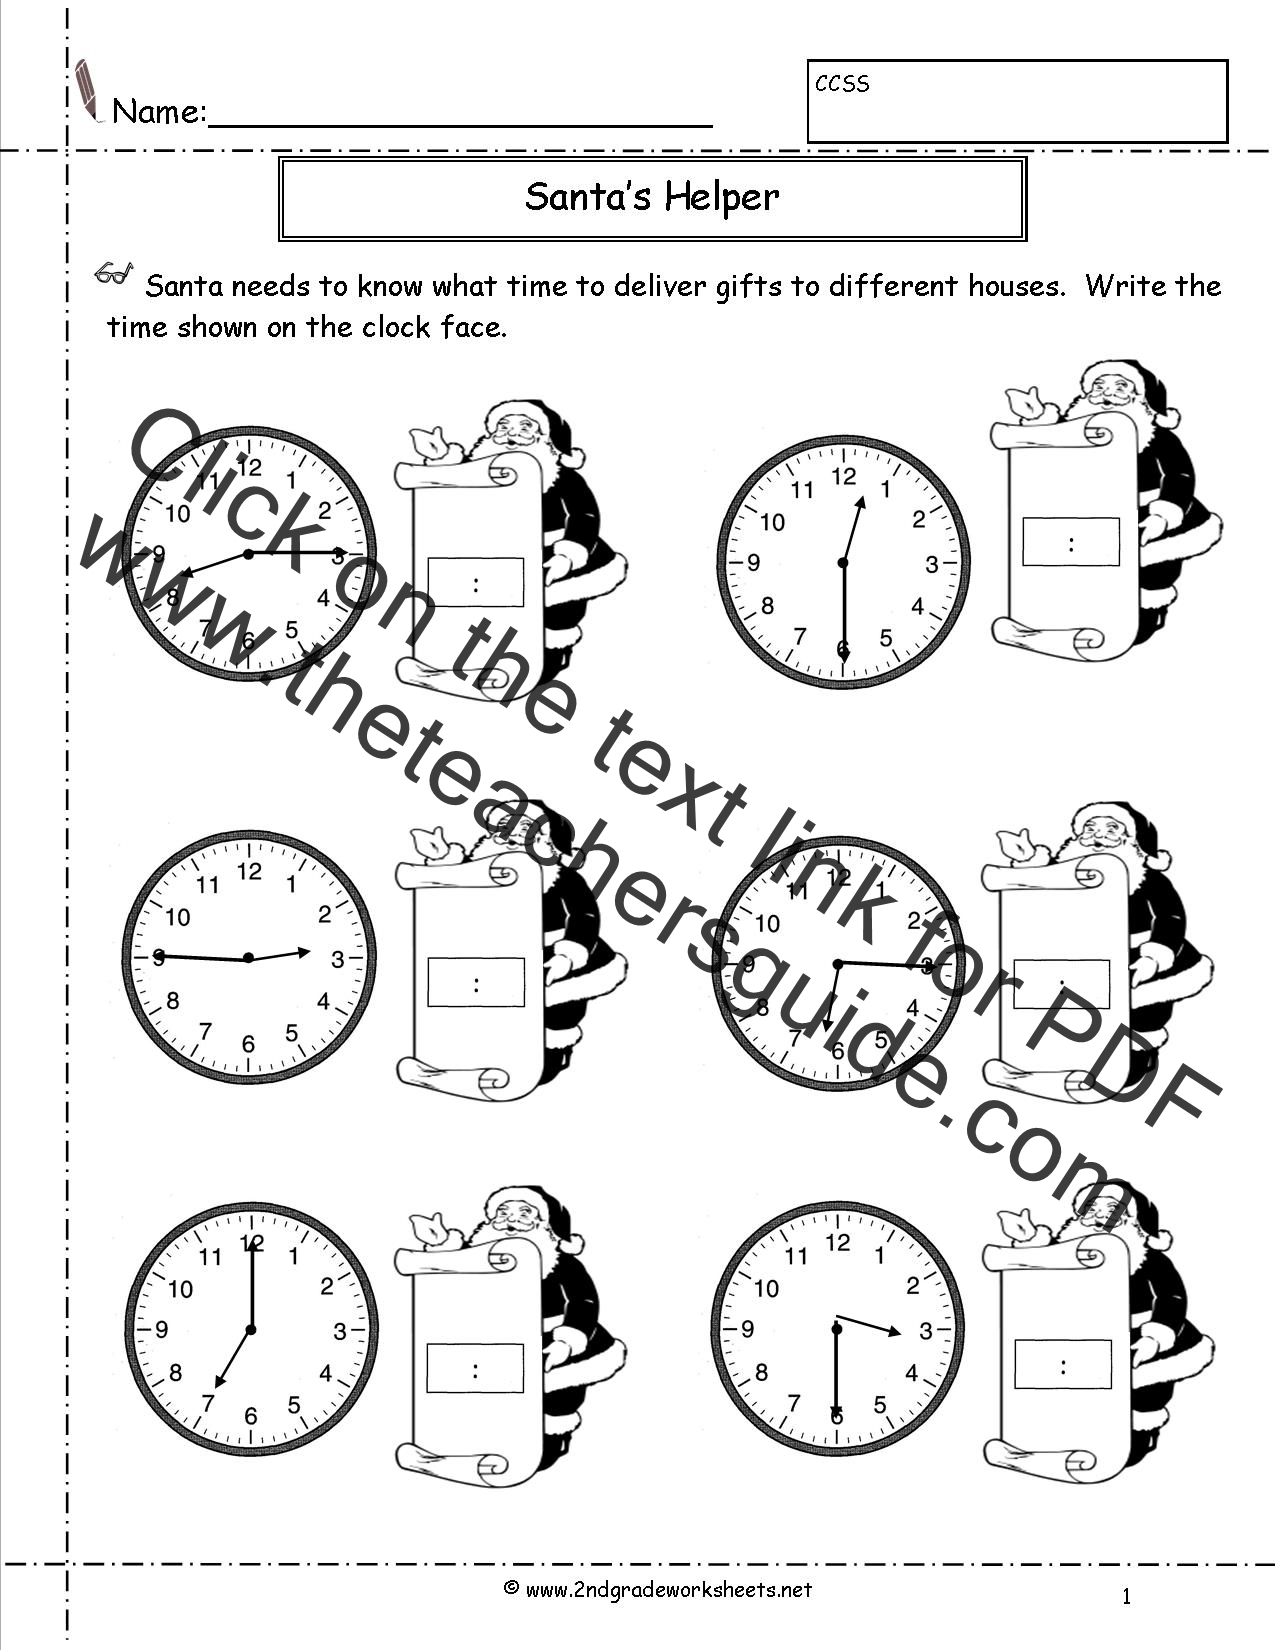 worksheet First Grade Holiday Worksheets cute first grade holiday worksheets images printable math christmas free library download